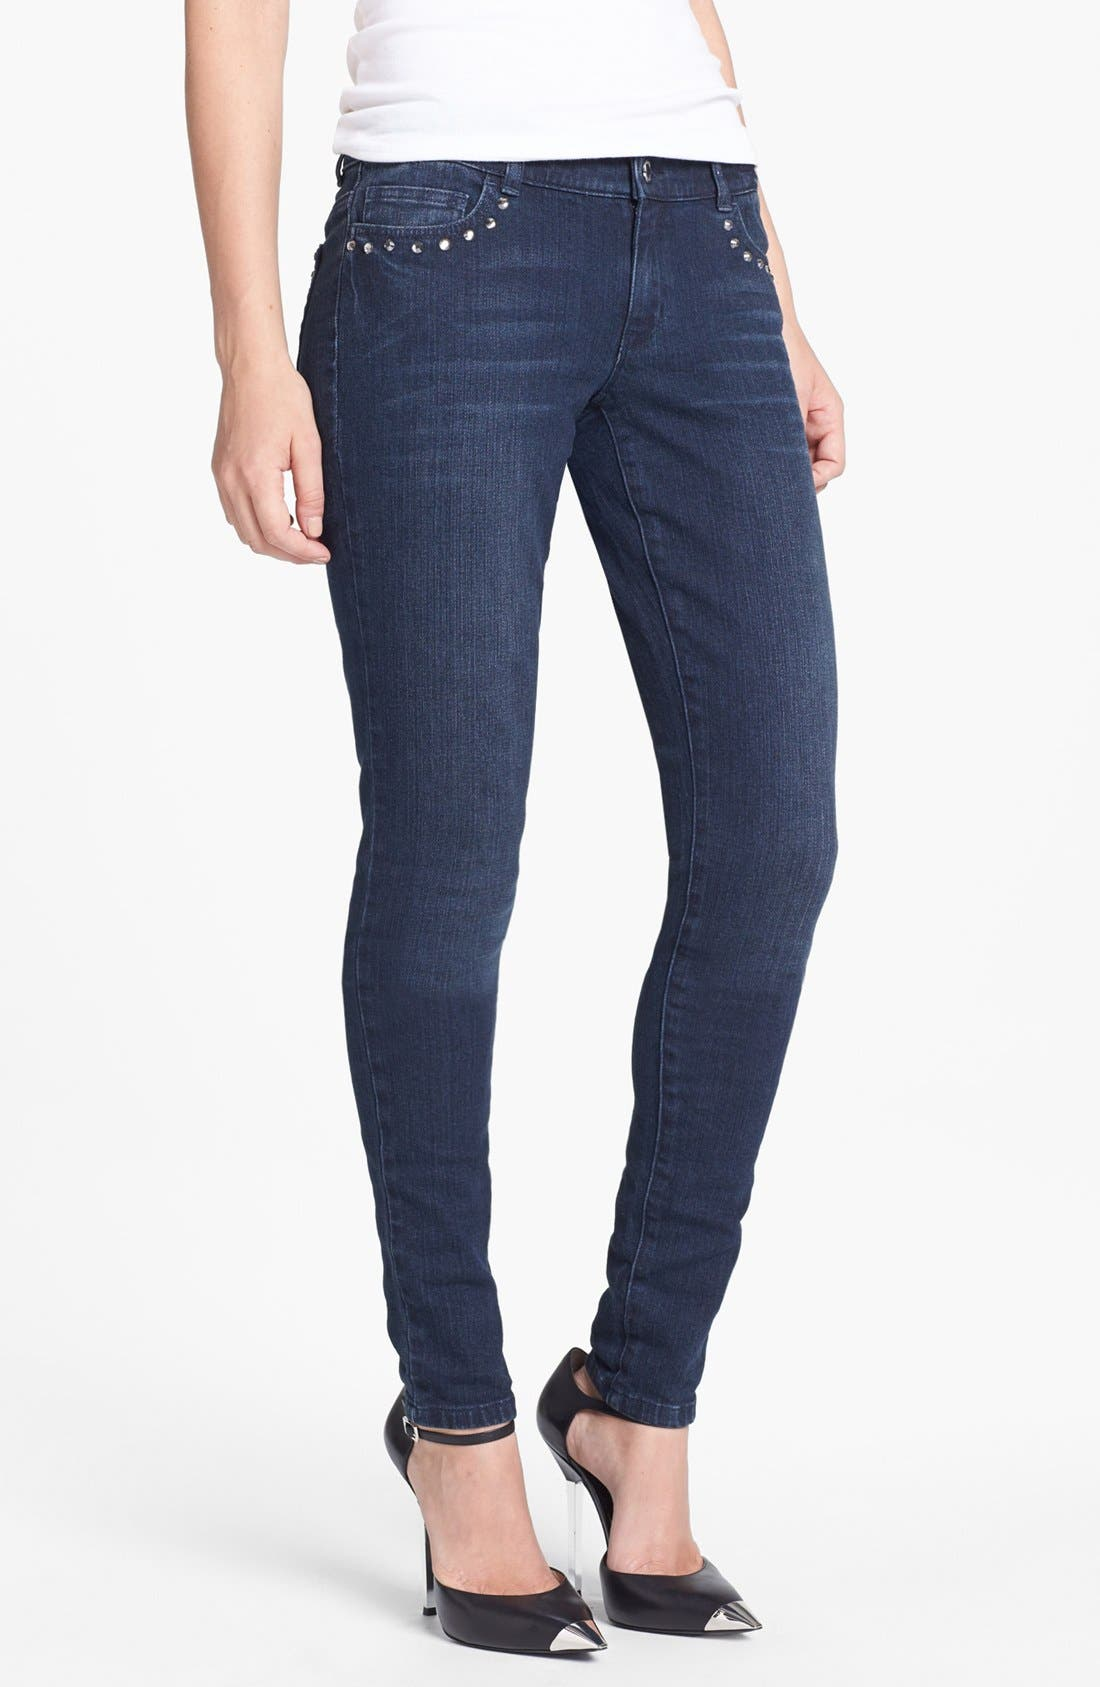 Alternate Image 1 Selected - MICHAEL Michael Kors Embellished Skinny Jeans (Stellar)